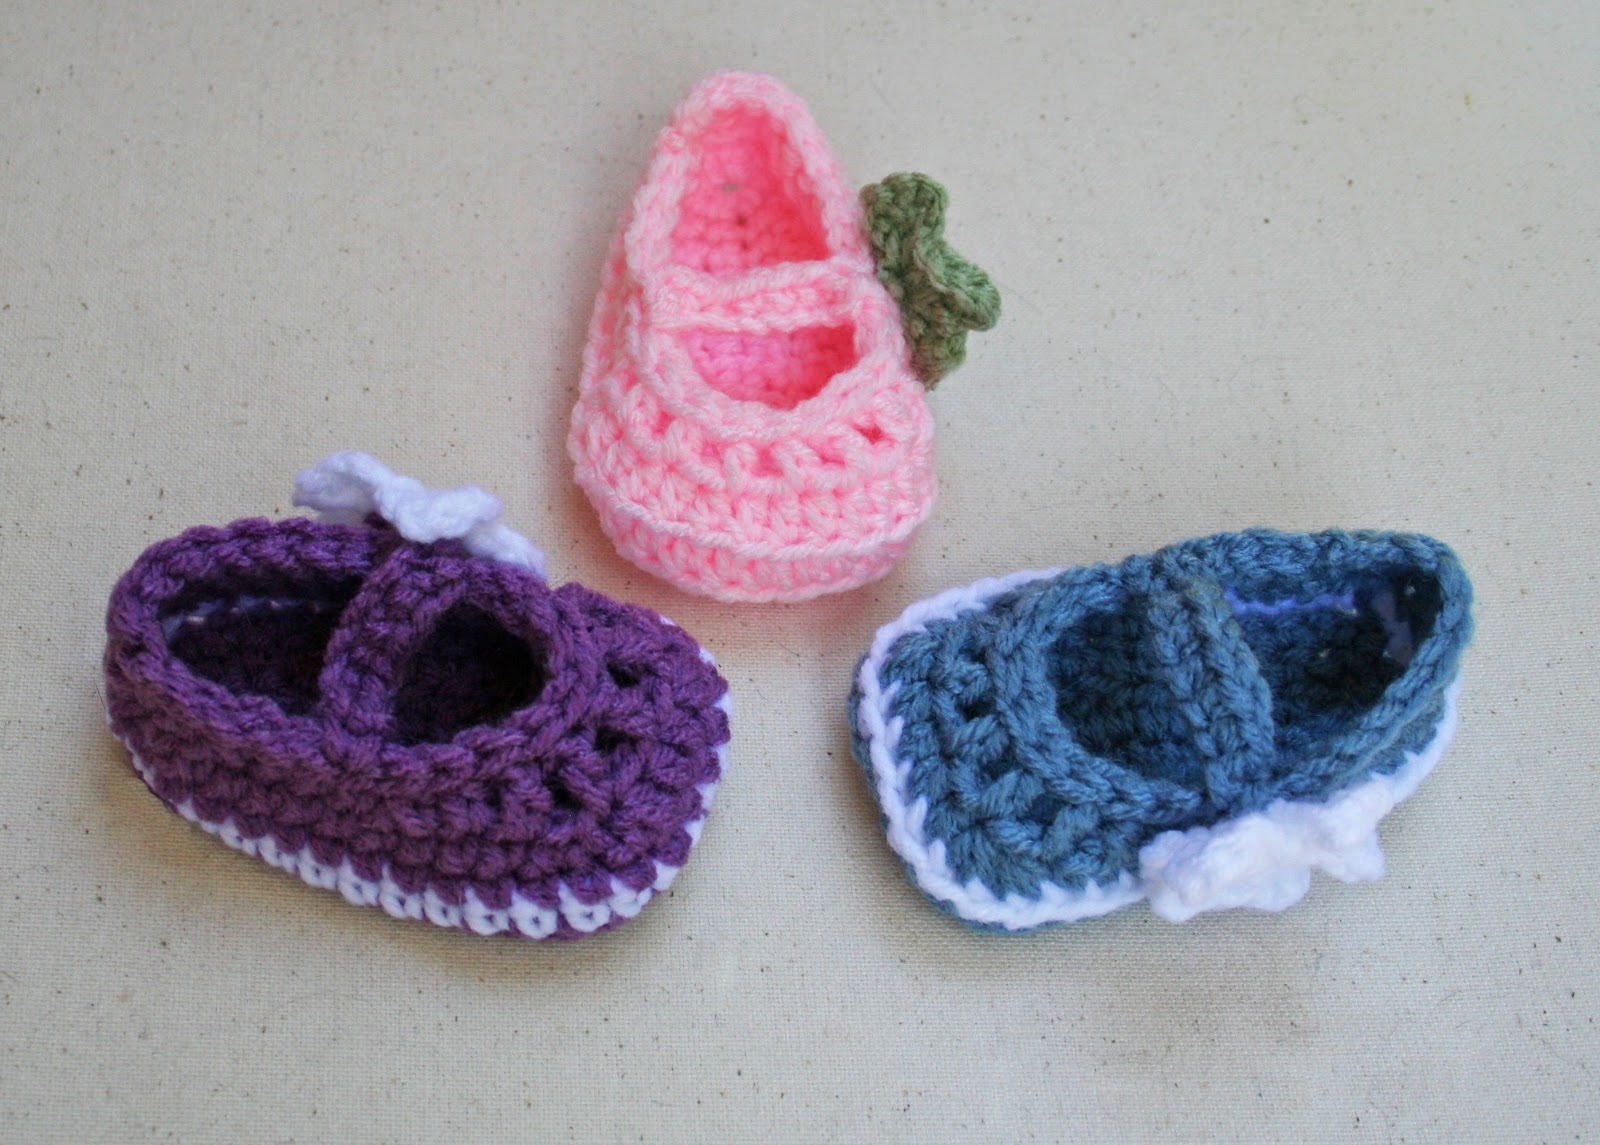 Crochet Baby Booties Pattern For Free : BABY BOOTIES CROCHET FREE JANE MARY PATTERN Crochet Patterns